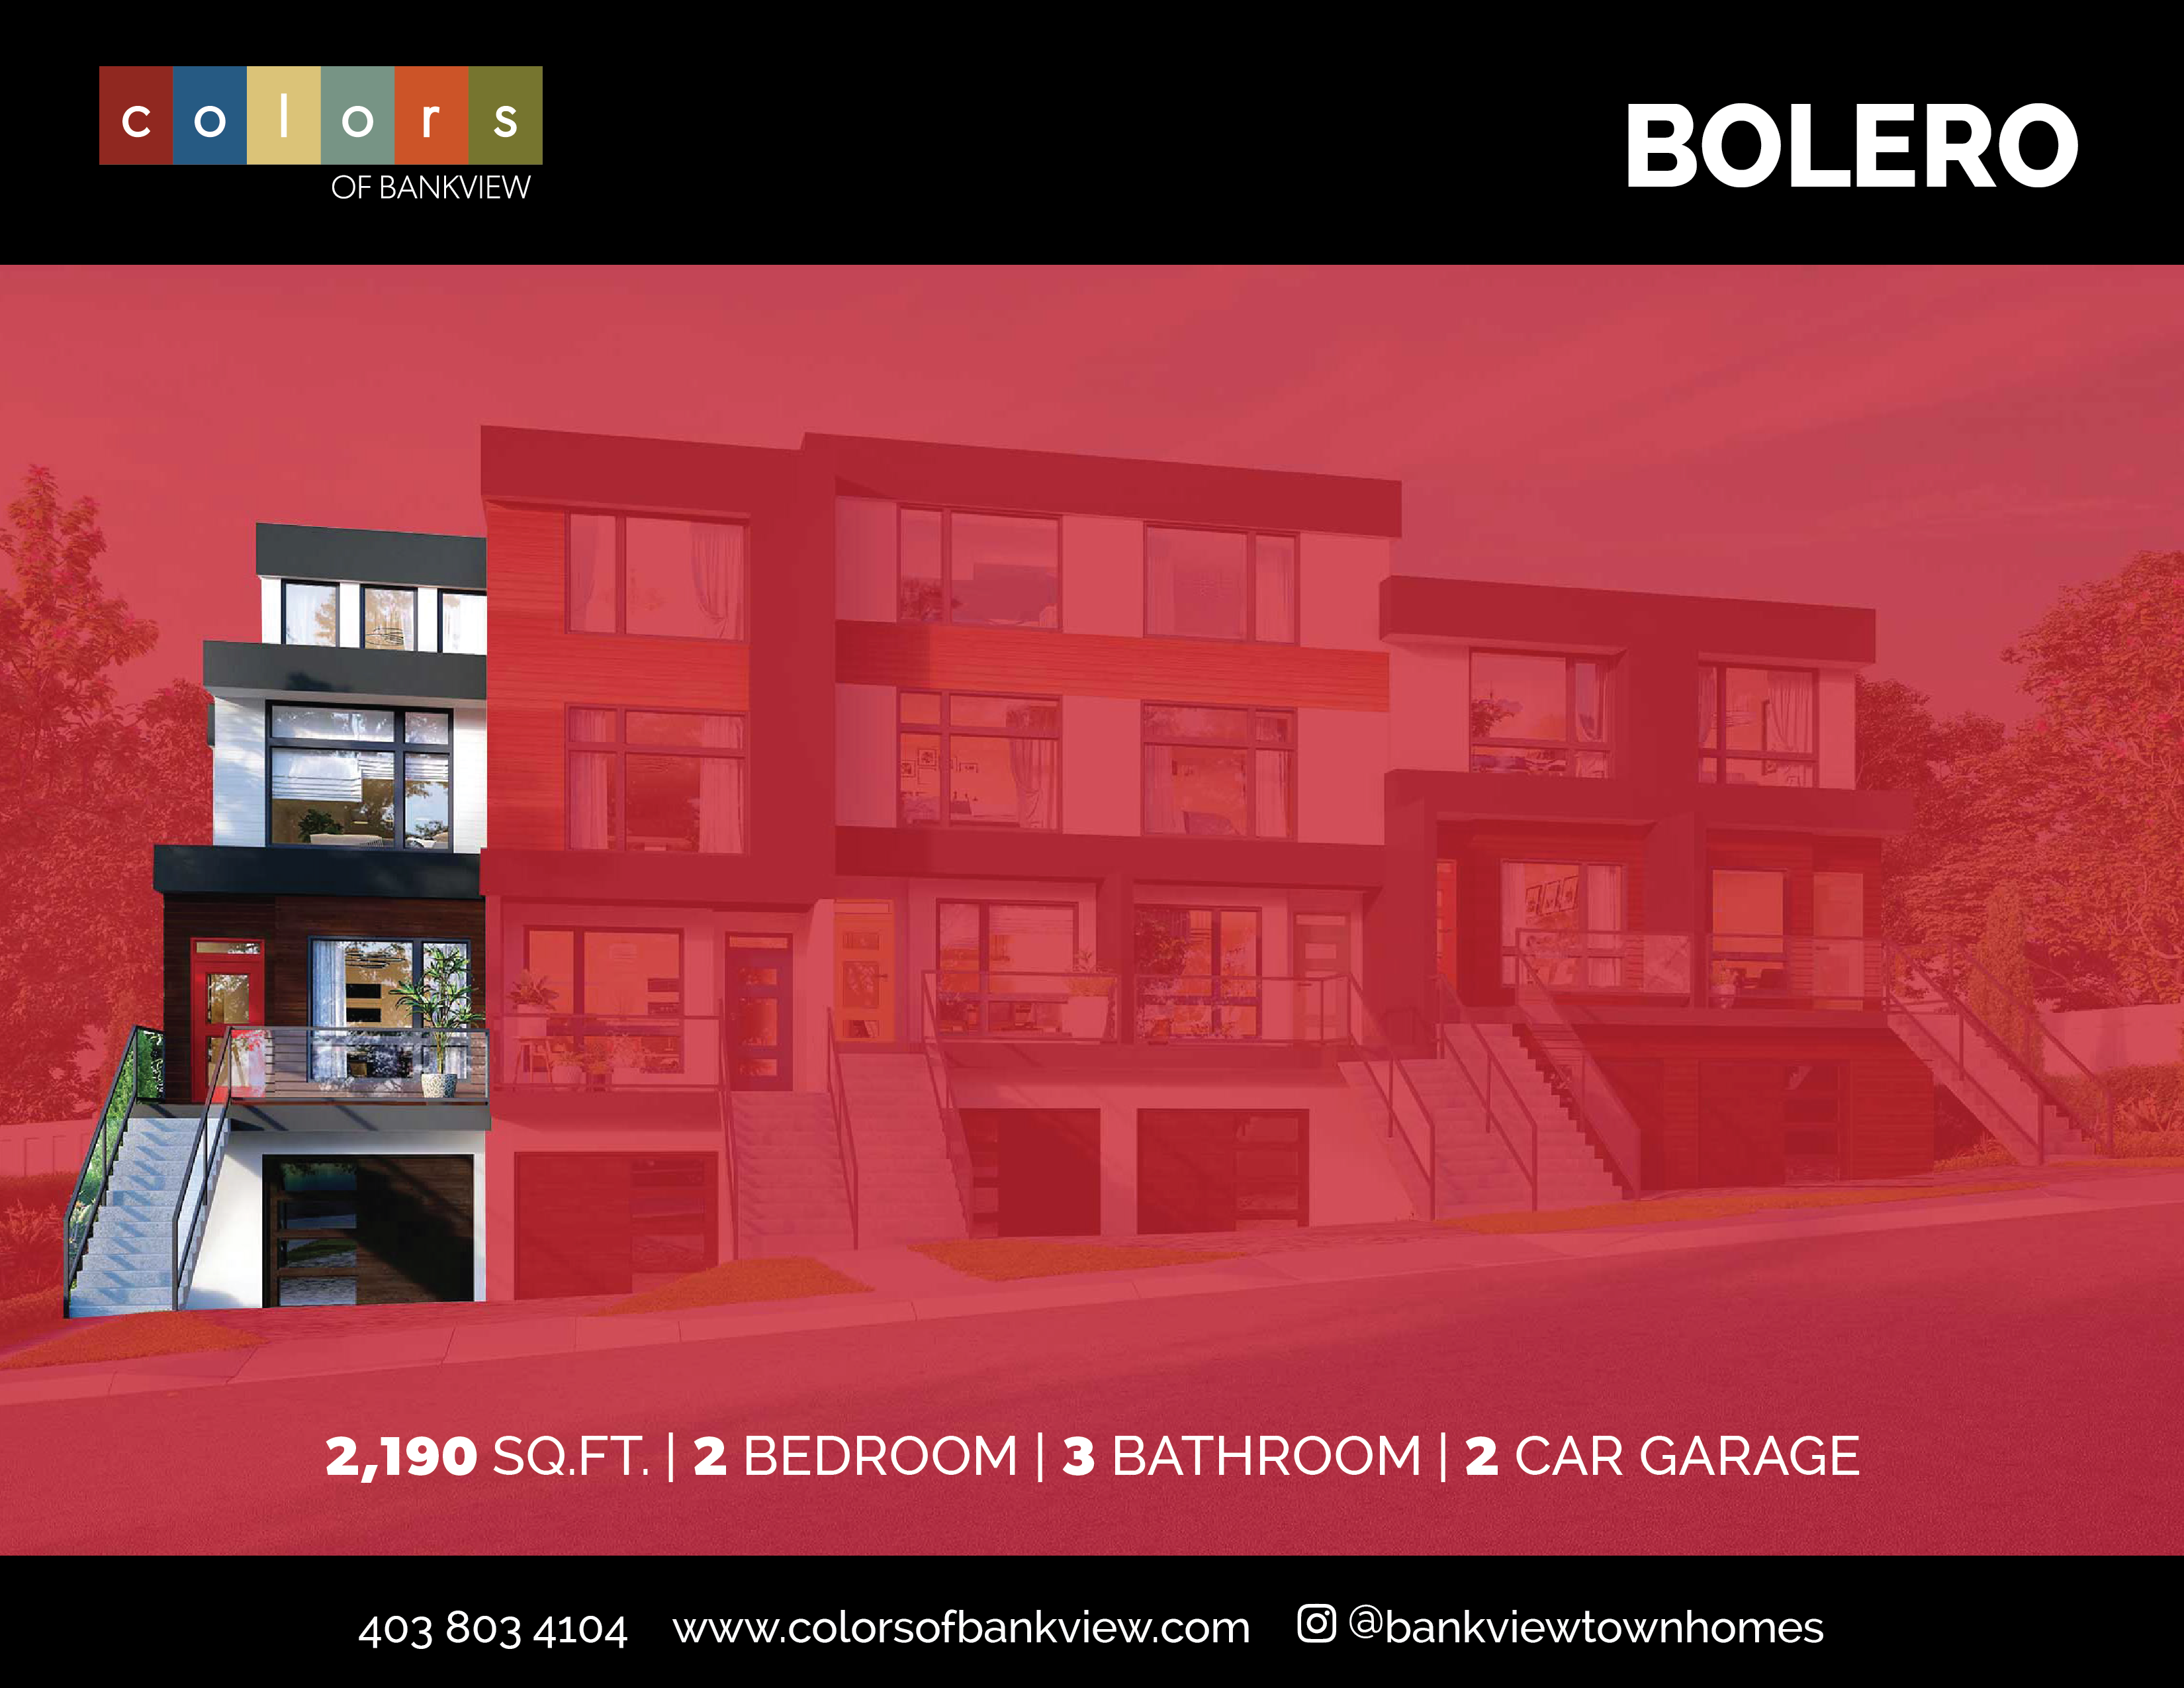 Bolero Townhome at Colors of Bankview